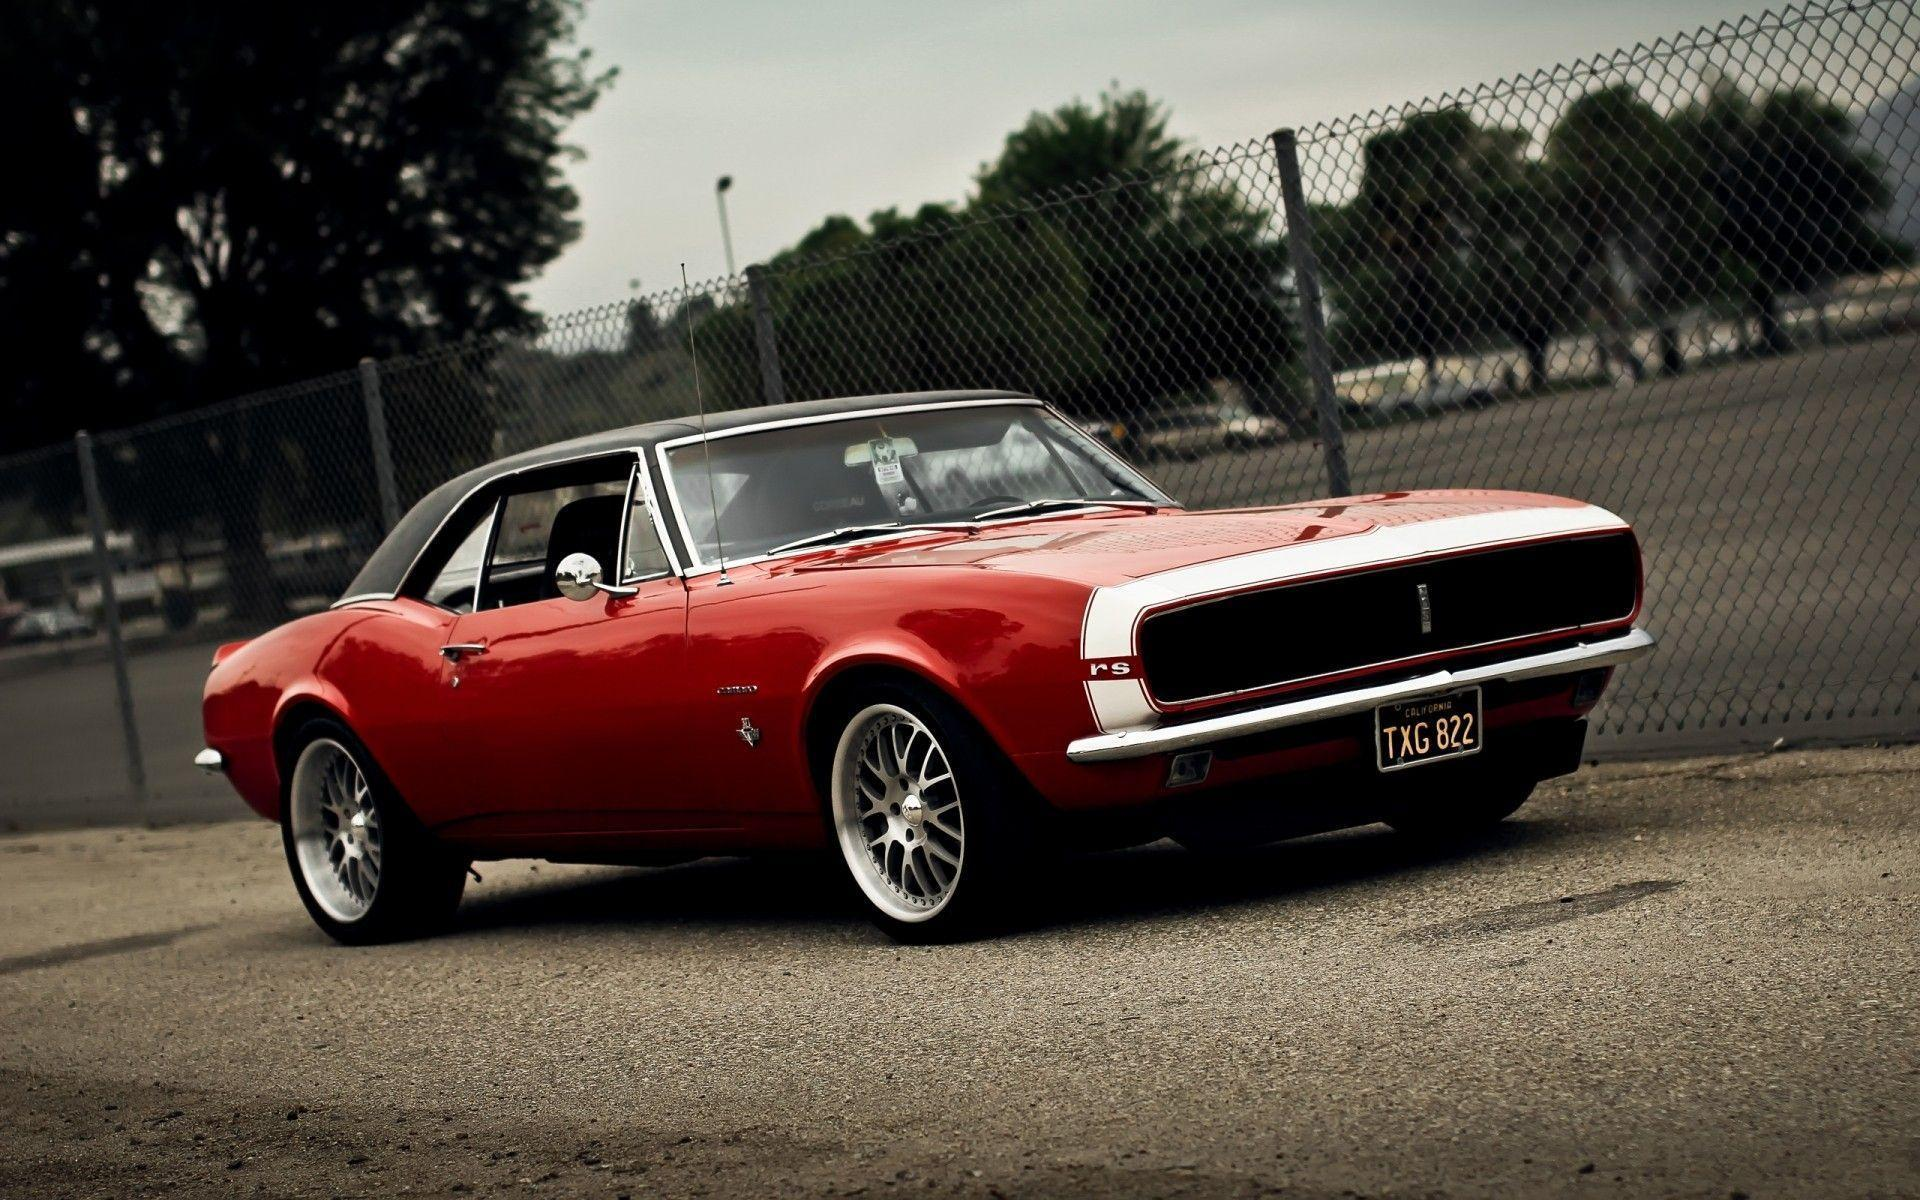 Muscle cars hd wallpapers wallpaper cave - Car desktop wallpaper ...